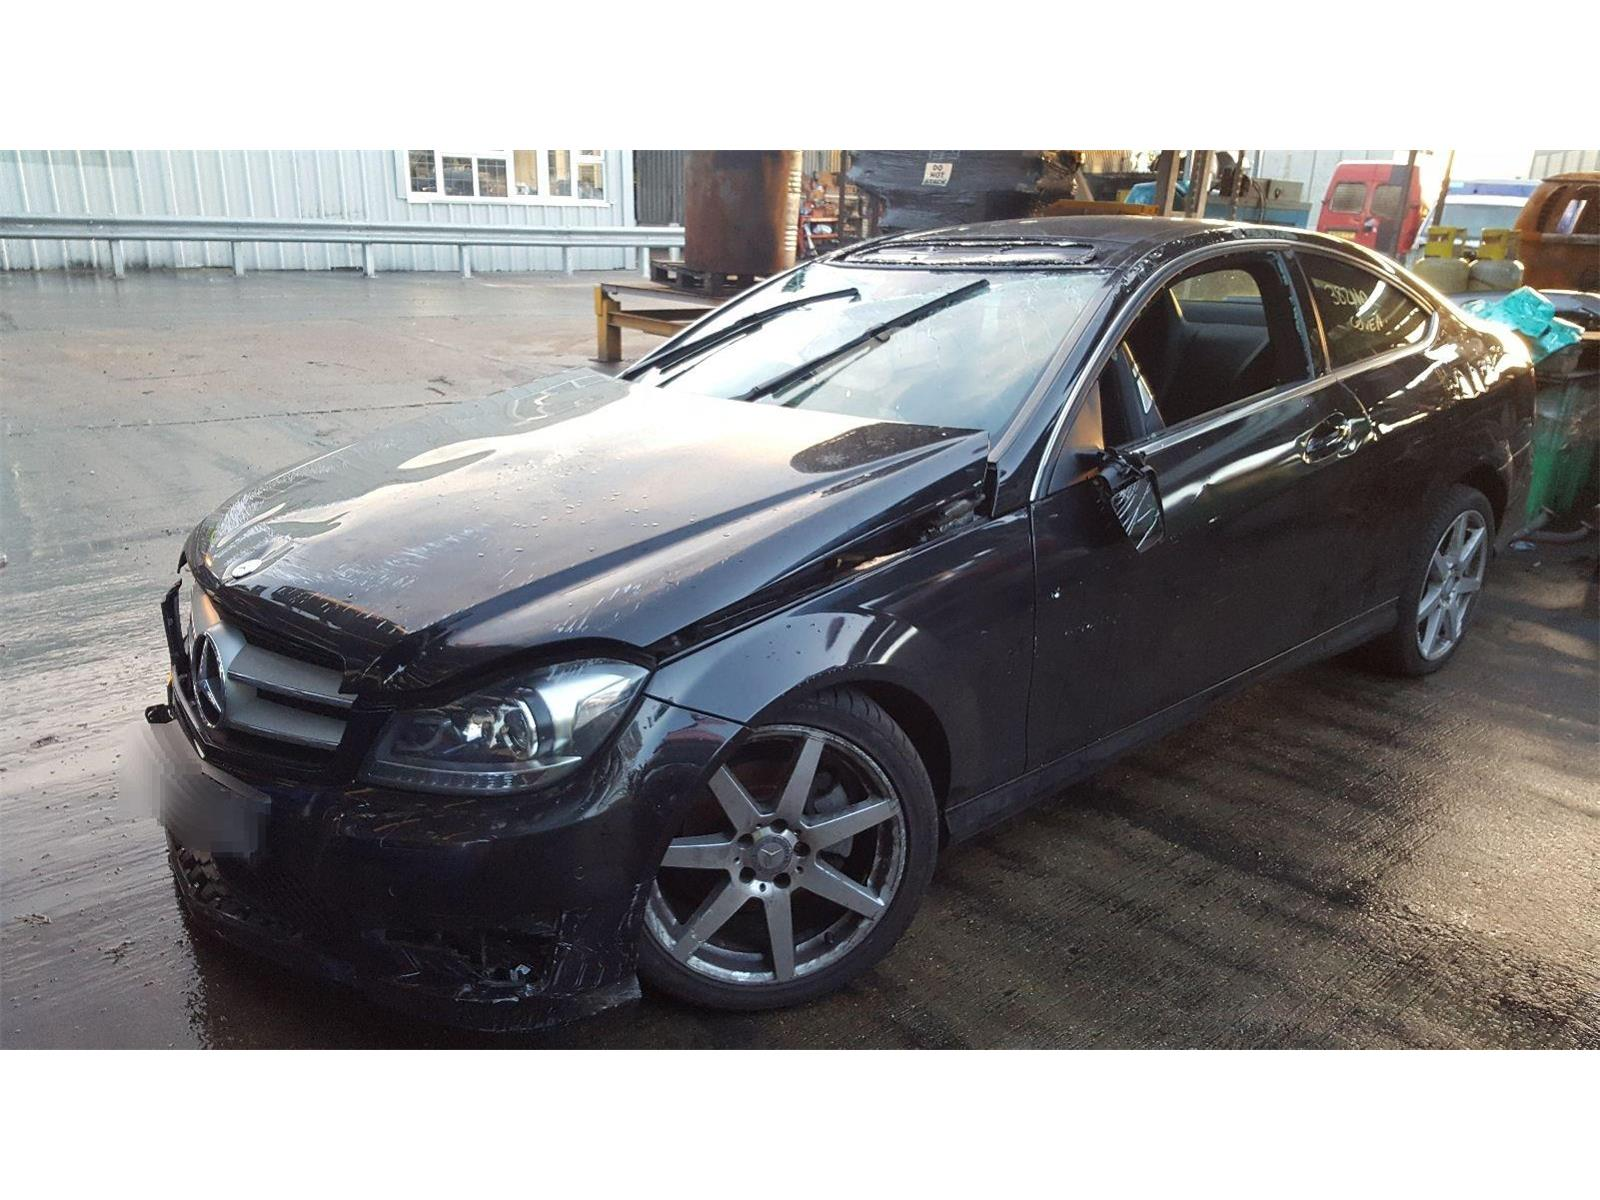 C220 Amg 2017 Mercedes Benz C Class 2011 To 2015 C220 Amg Sport Plus Cdi